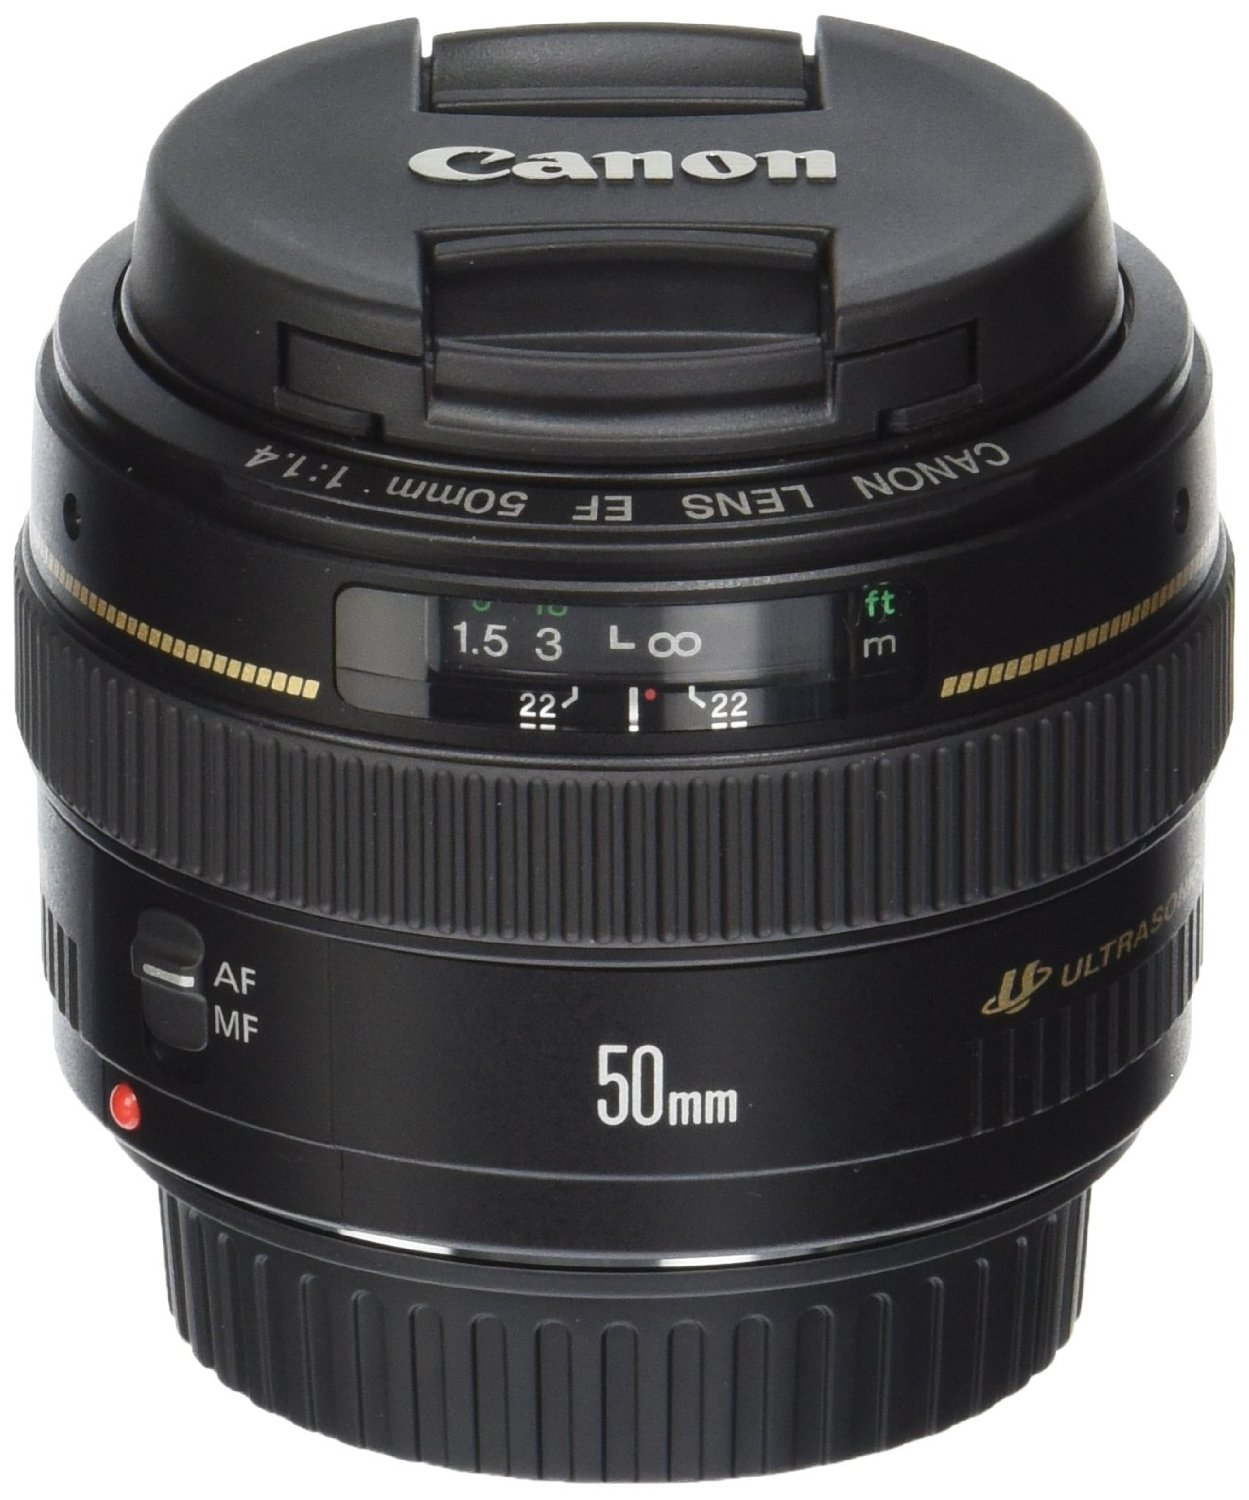 1_Canon EF 50mm f:1.4 USM Standard & Medium Telephoto Lens.jpg